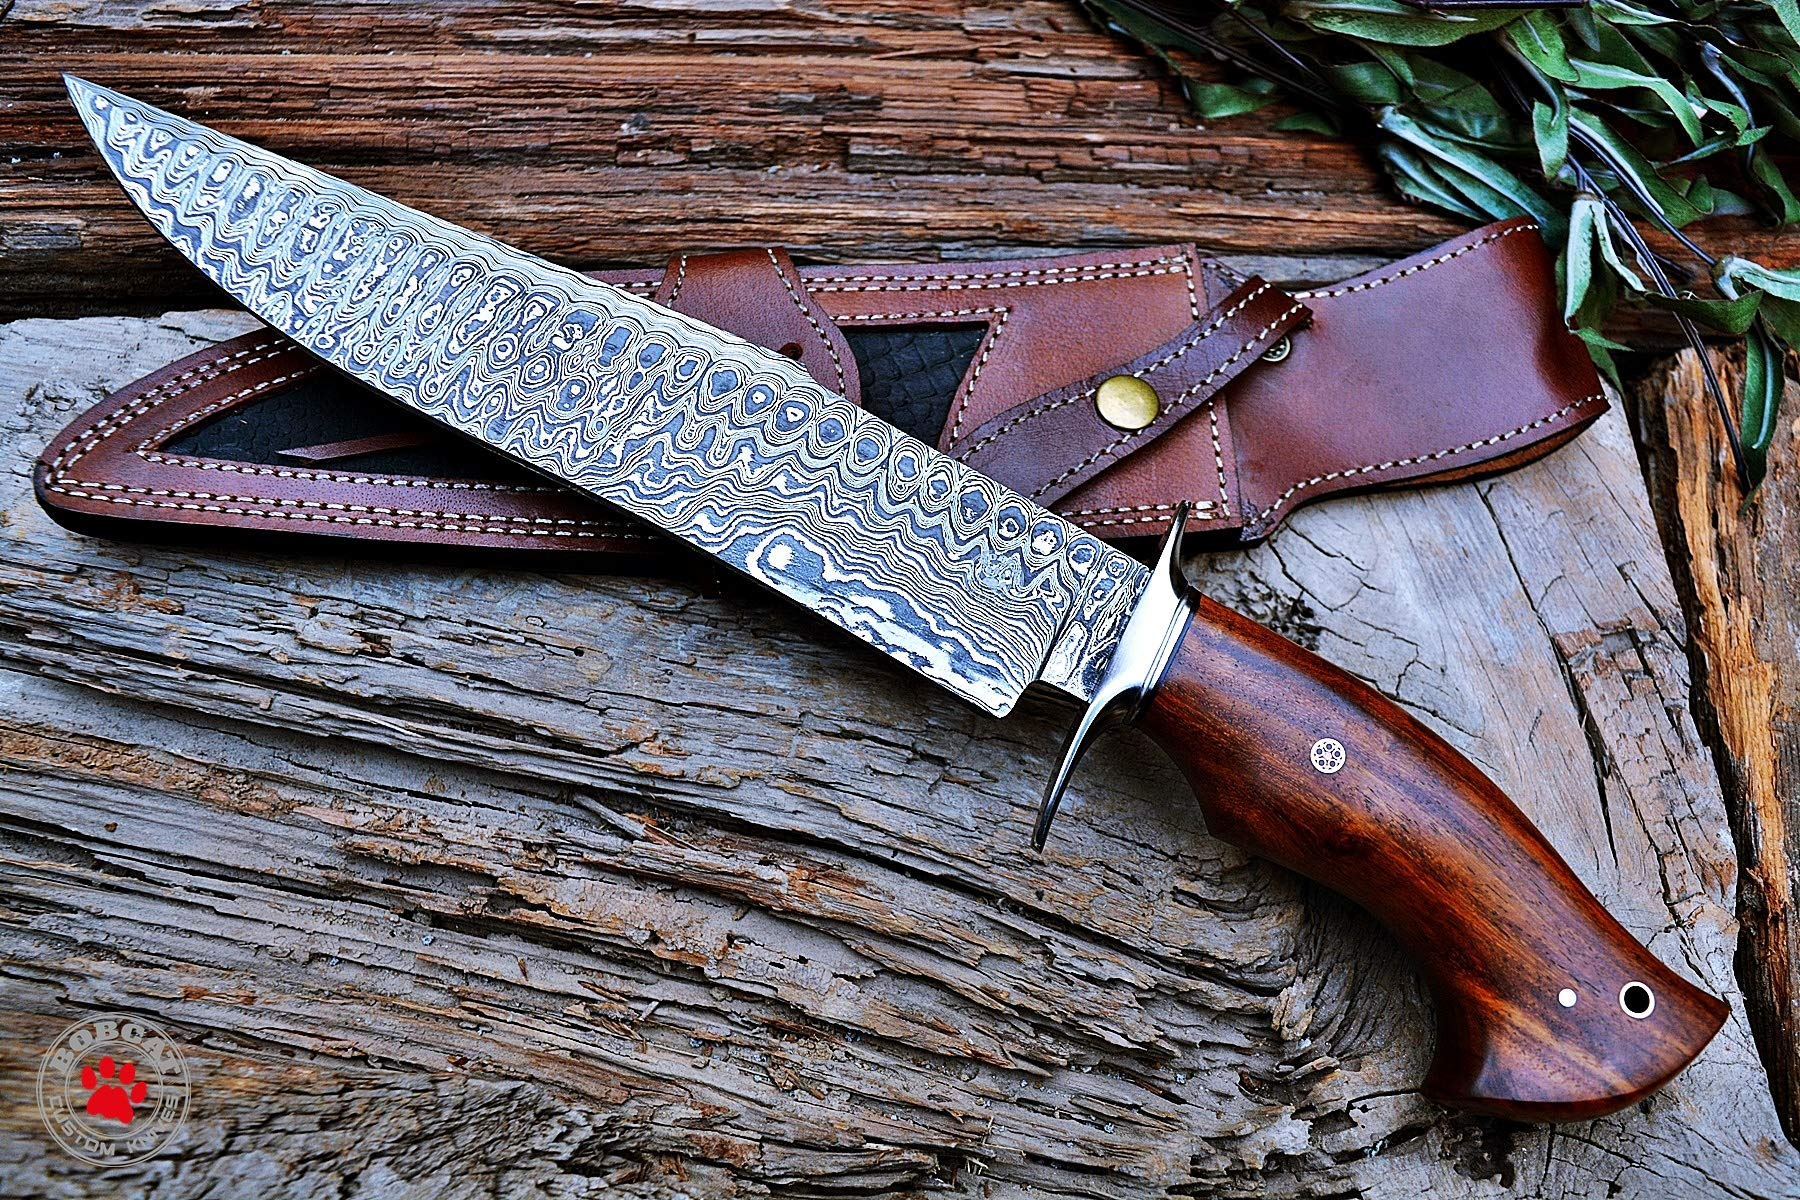 Custom Handmade Bowie Knife Hunting Knife Promotional Price Full Tang Damascus Steel 10'' Solid Walnut Wood Handle with Nice Sheath by Bobcat Knives (Image #7)